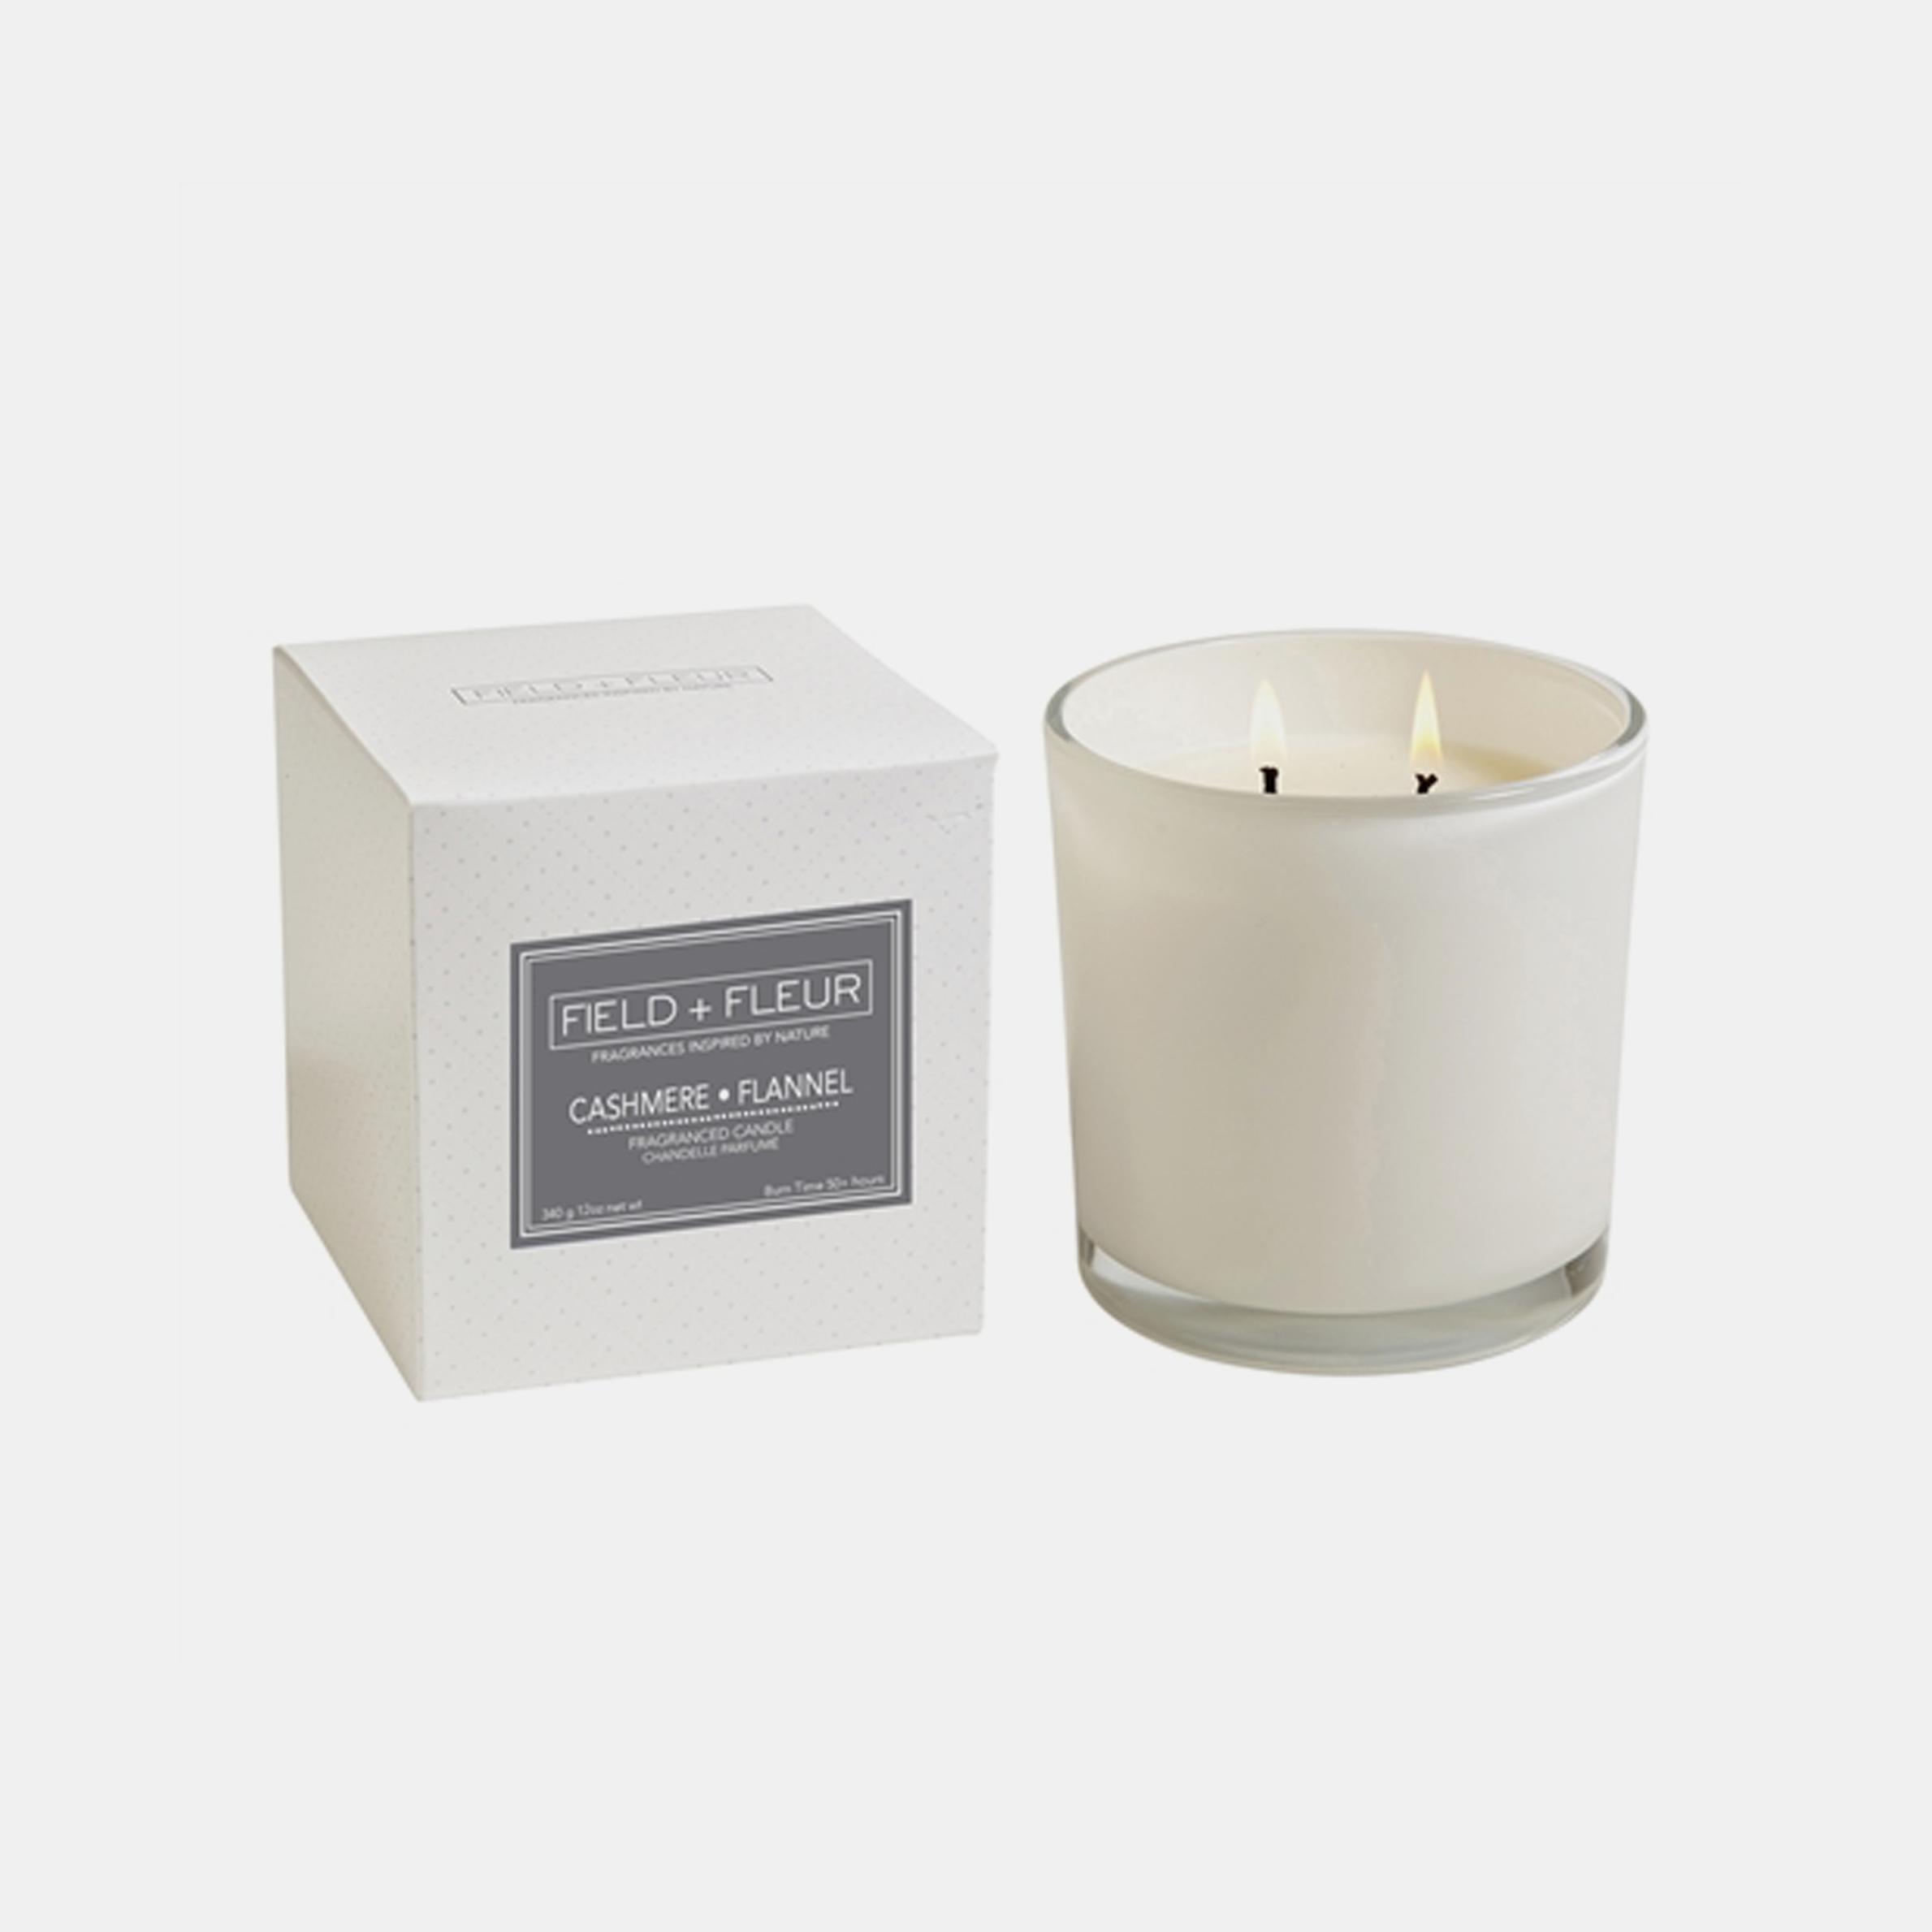 Cashmere Flannel Candle  Two-wick candle in white glass jar. 12 oz. SKU99585HLN